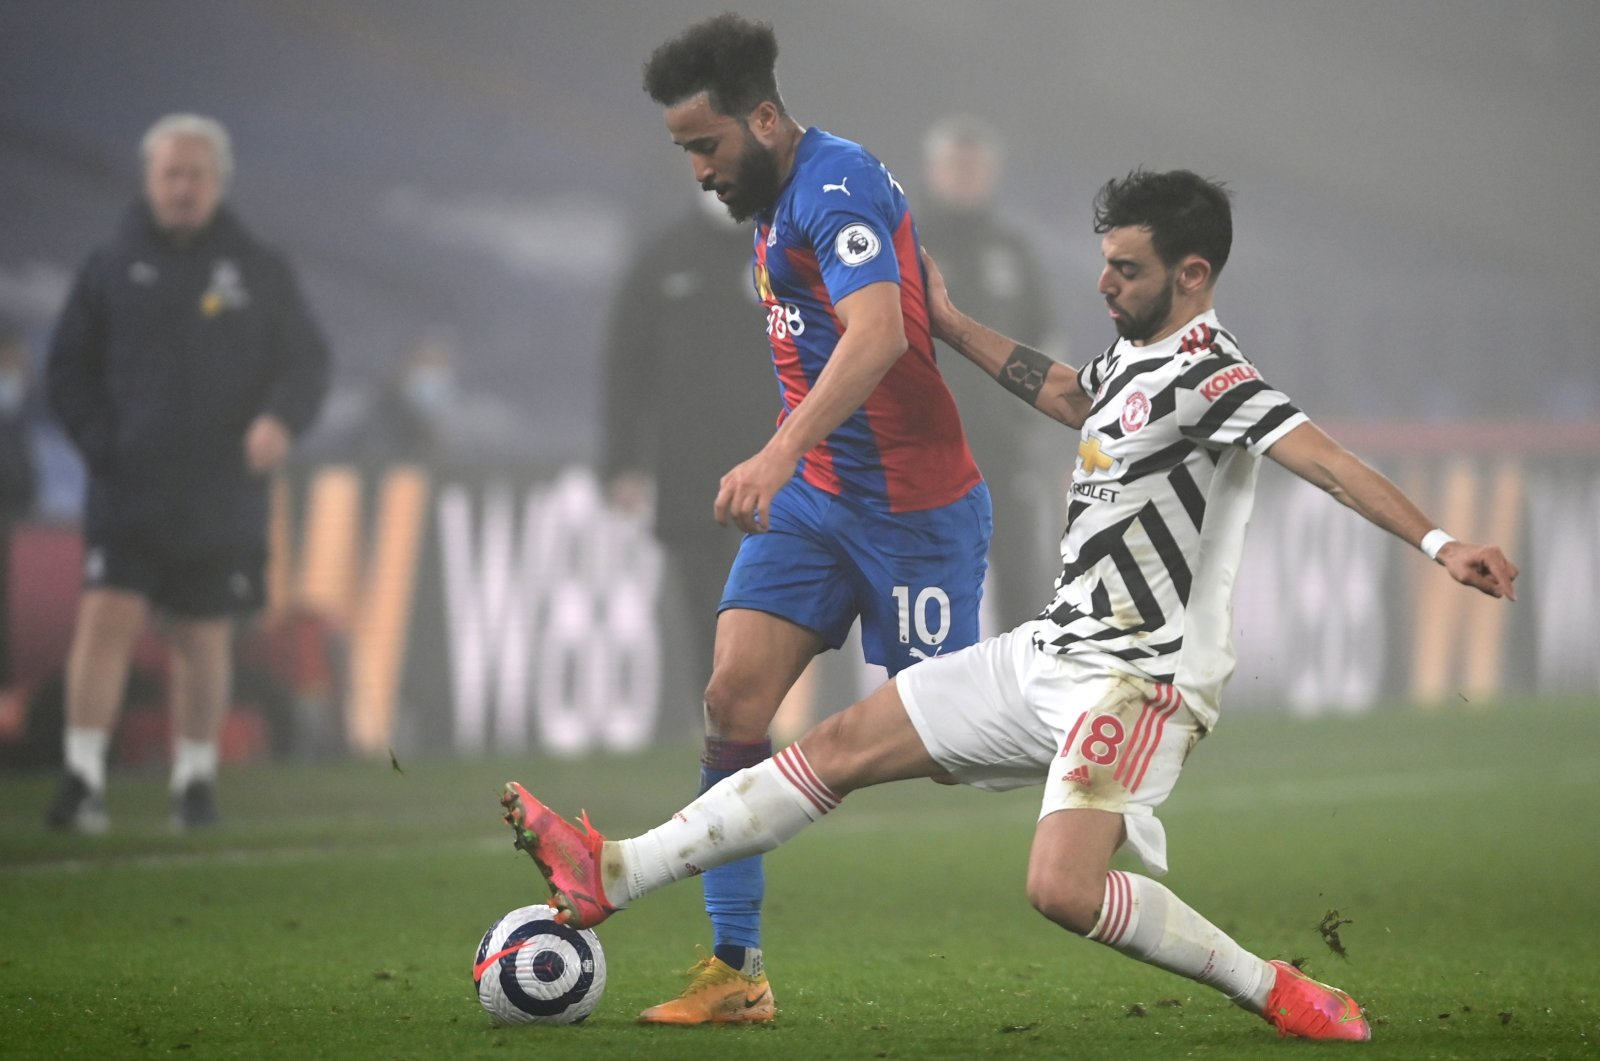 Manchester United's Bruno Fernandes (R) in action against Crystal Palace's Andros Townsend (L) during the English Premier League match in London, Britain, March 3, 2021. (EPA Photo)